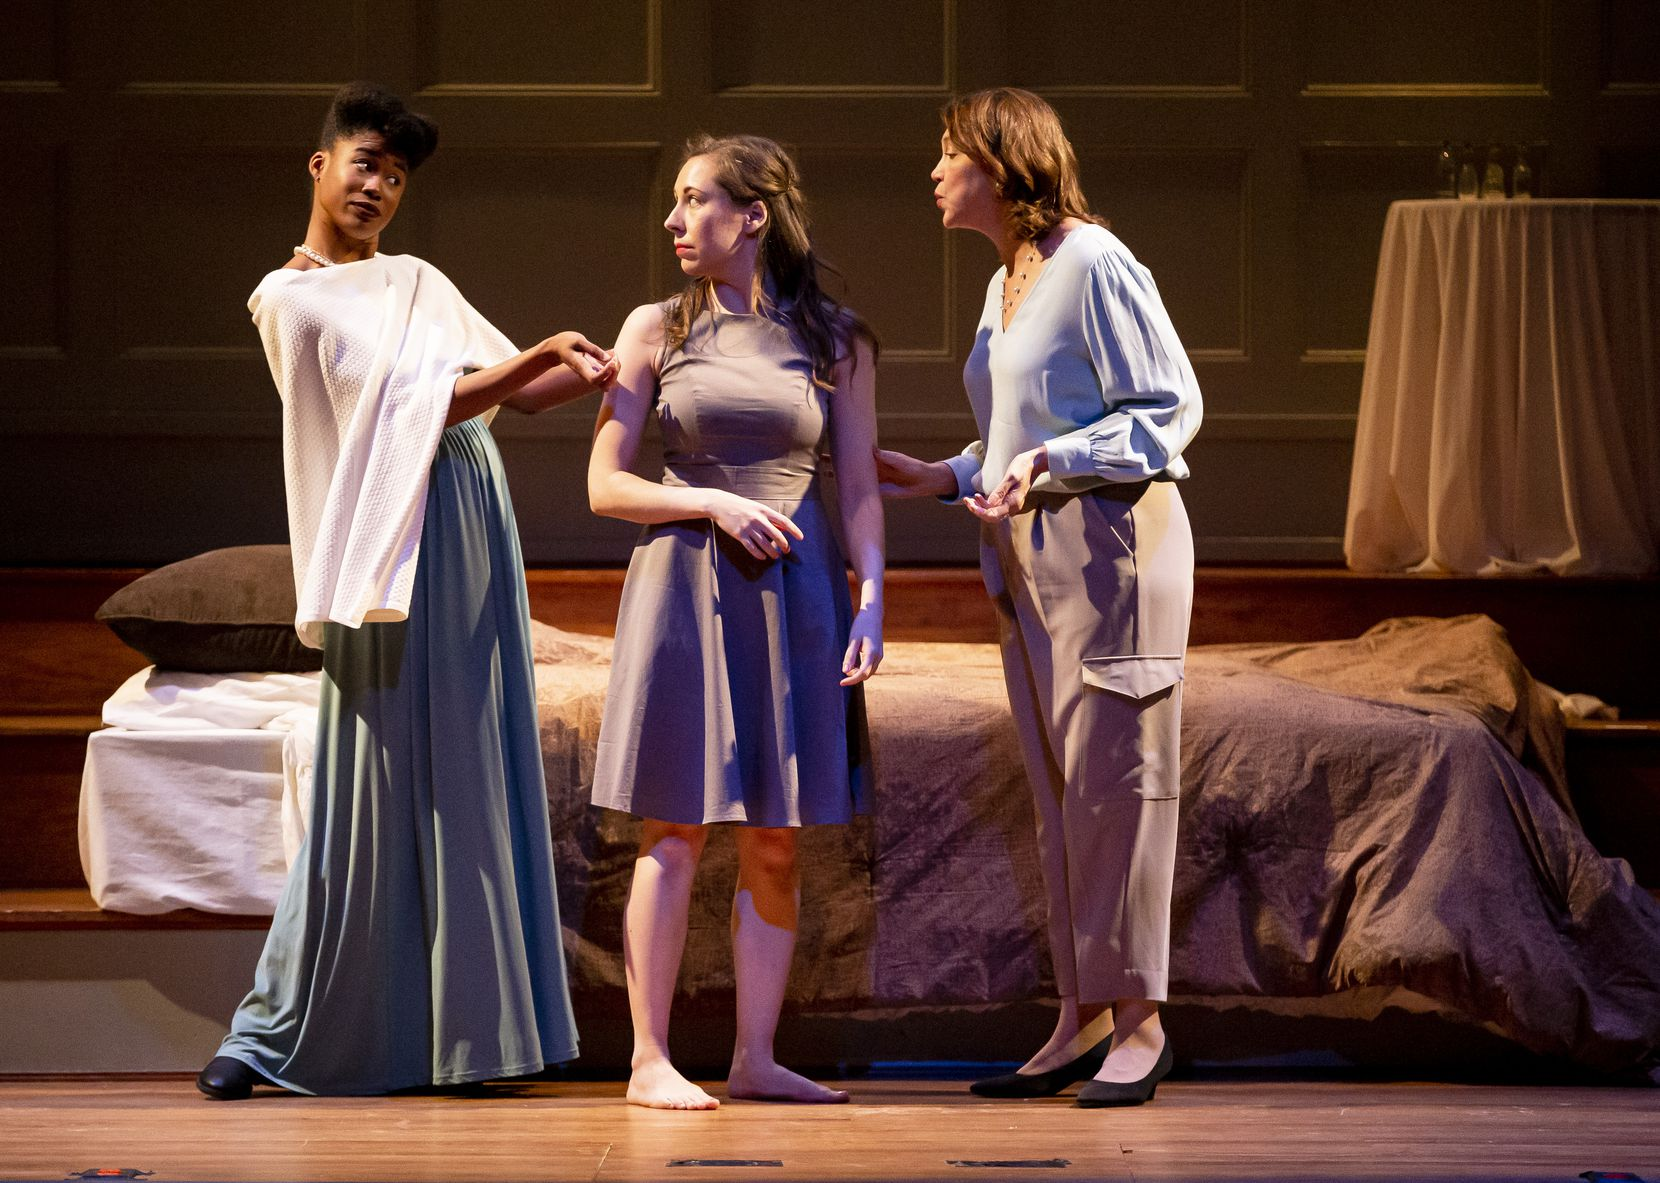 """Jaquai Wade Pearson (from left), Emily Ernst and and Joan Korte perform during a dress rehearsal of """"Romeo and Juliet"""" by the Fair Assembly theater company at Arts Mission Oak Cliff on Jan. 29, 2020, Wednesday, January 29, 2020, days before the pandemic erupted in North Texas."""